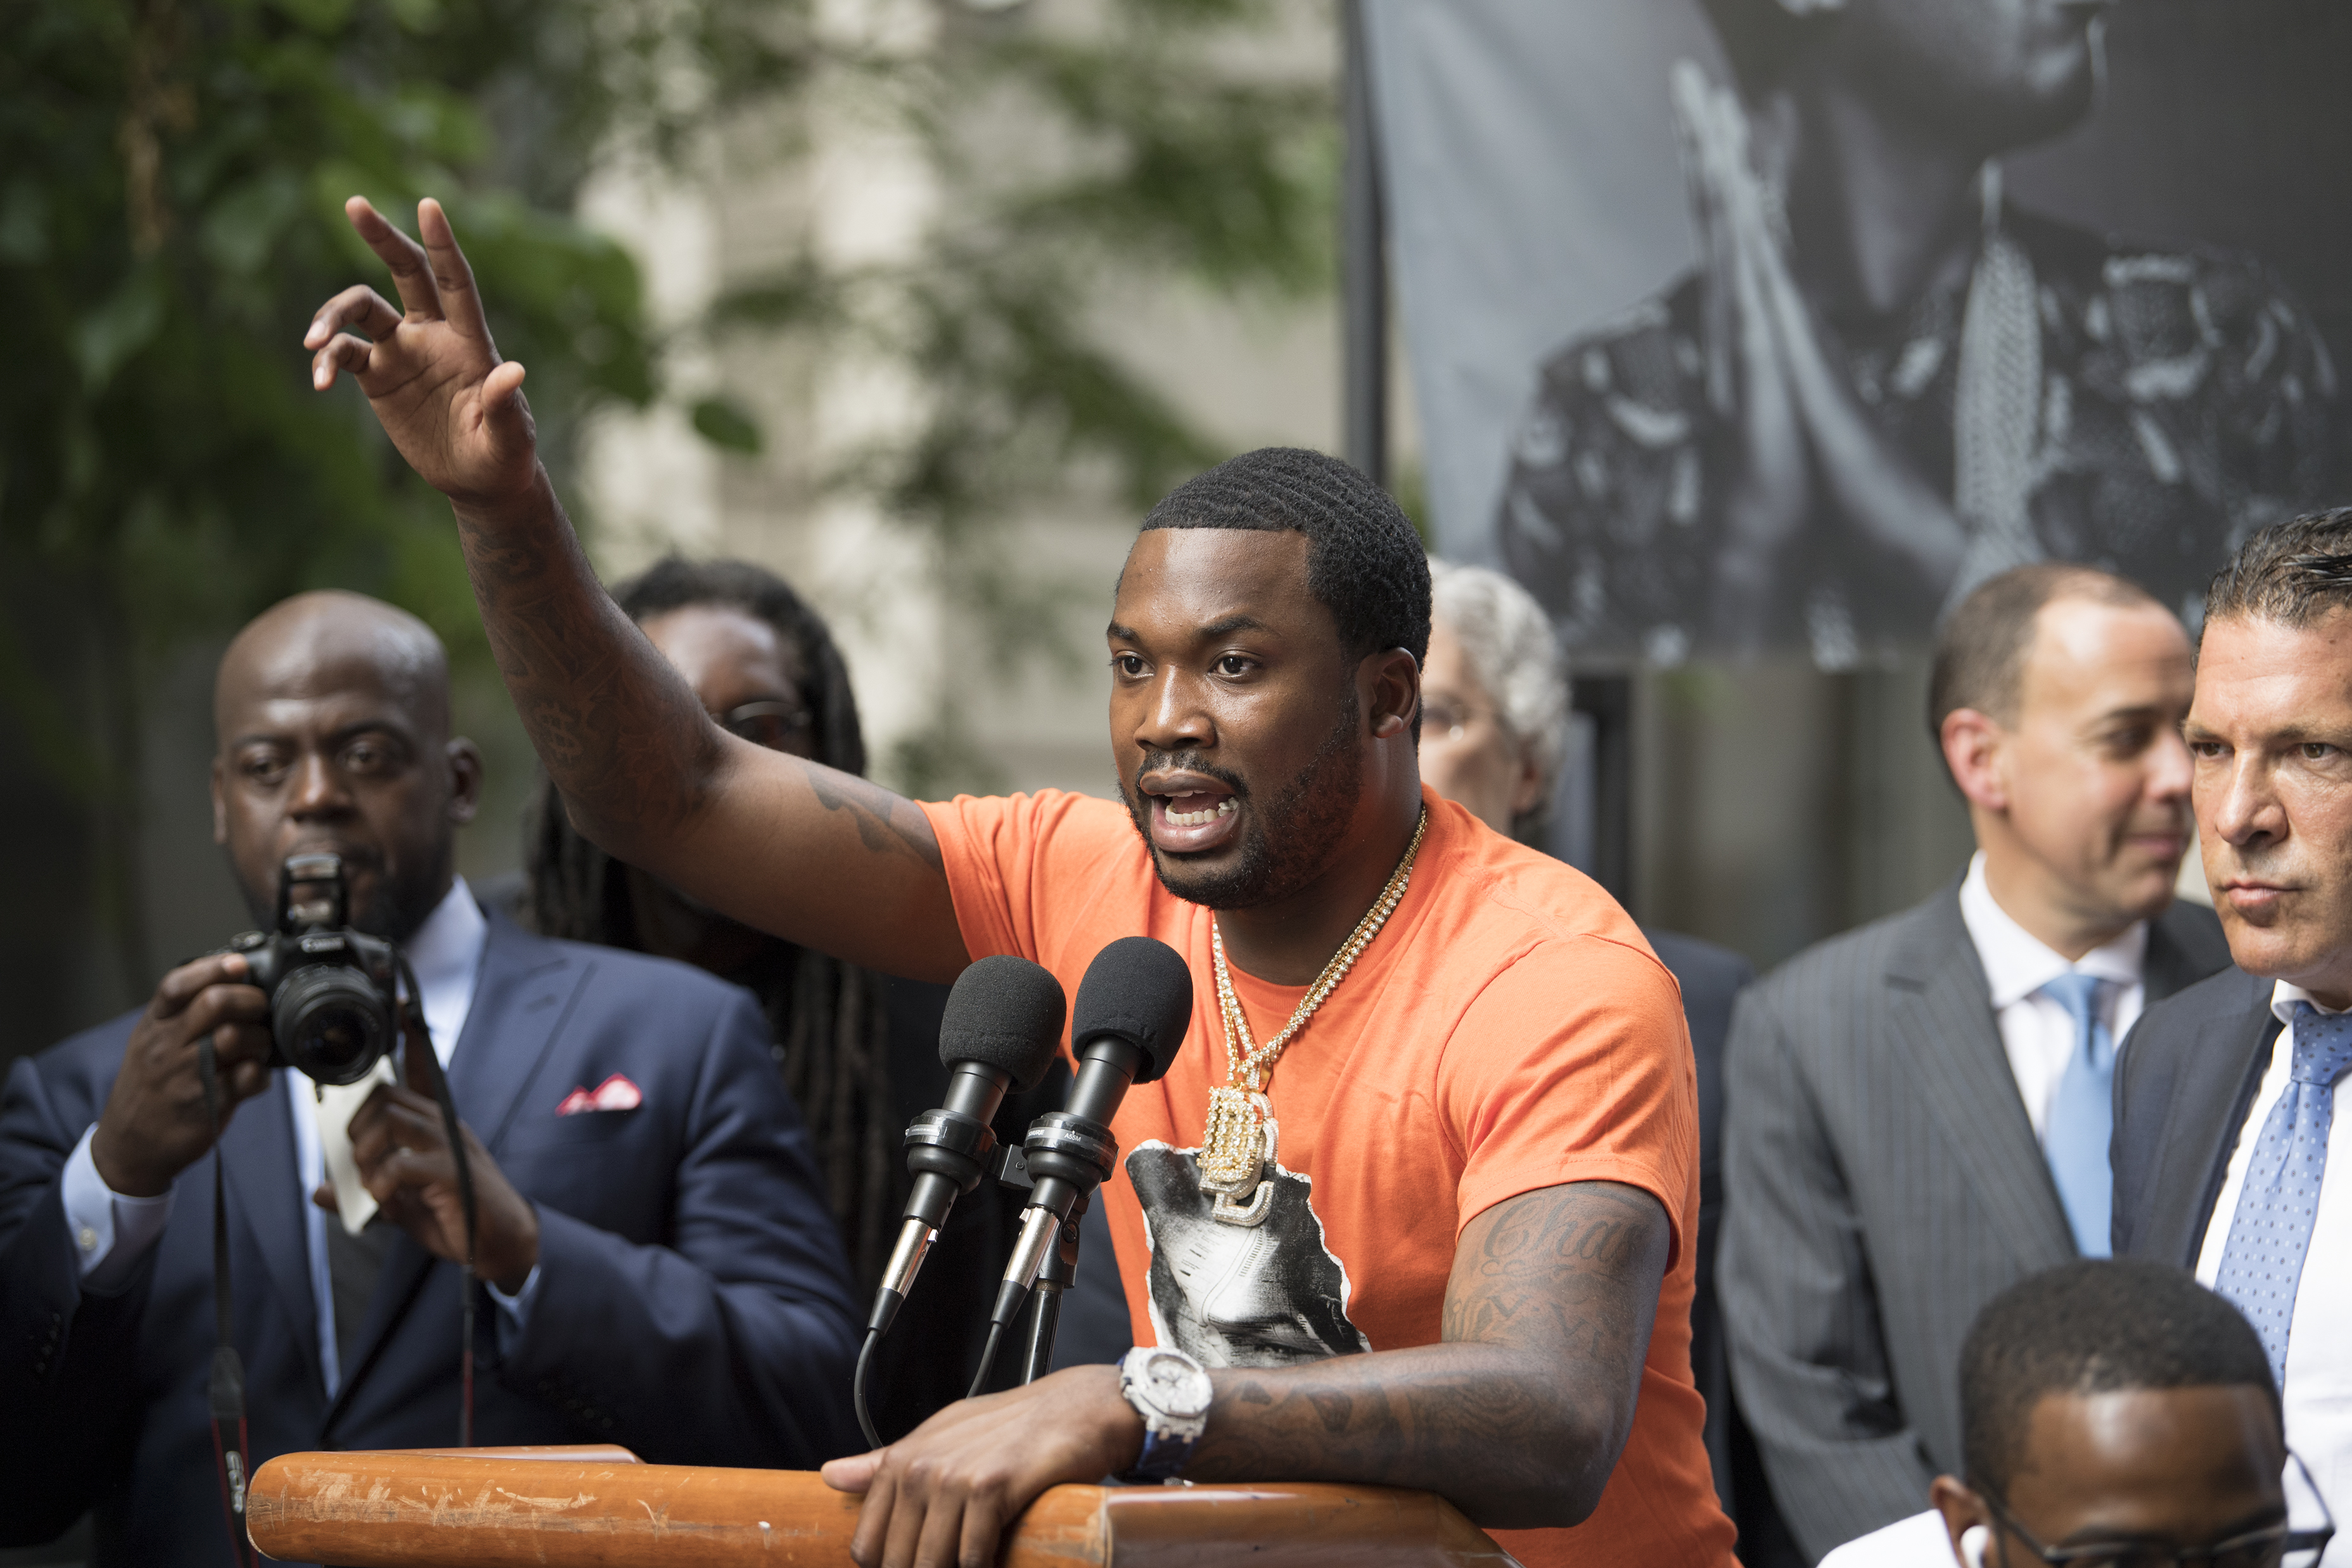 Rapper Meek Mill speaks to supporters after leaving the Philadelphia Criminal Justice in Center City Philadelphia following a hearing before Judge Genece Brinkley on Monday, June 18, 2018.